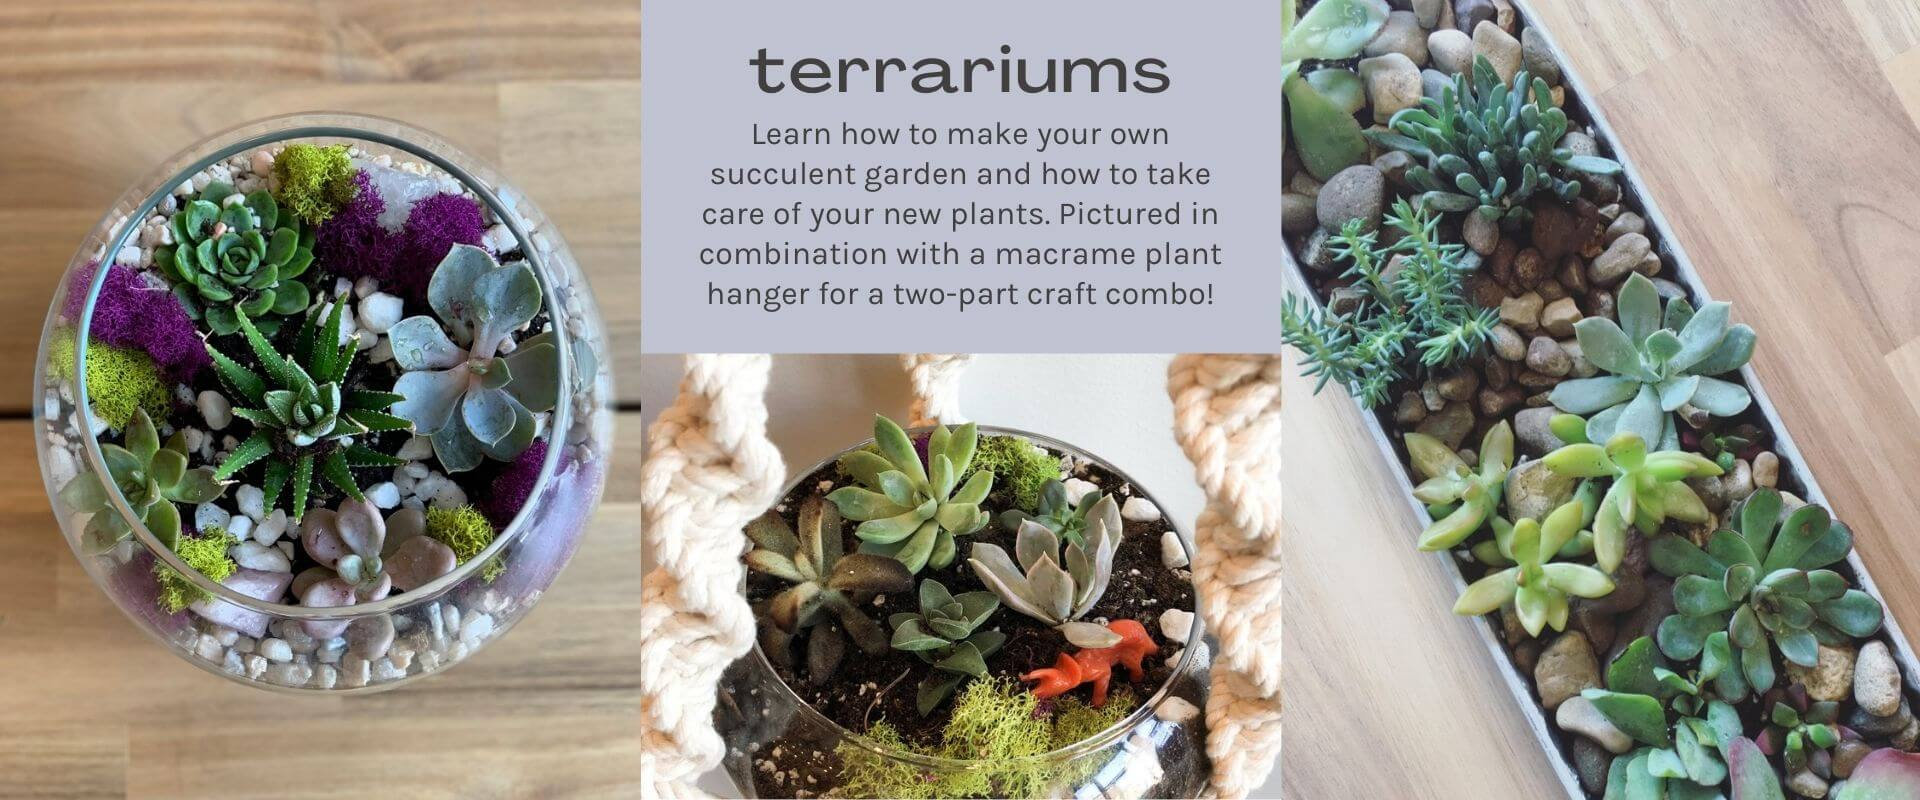 text-terrariums image-green succulents rocks and moss in containers